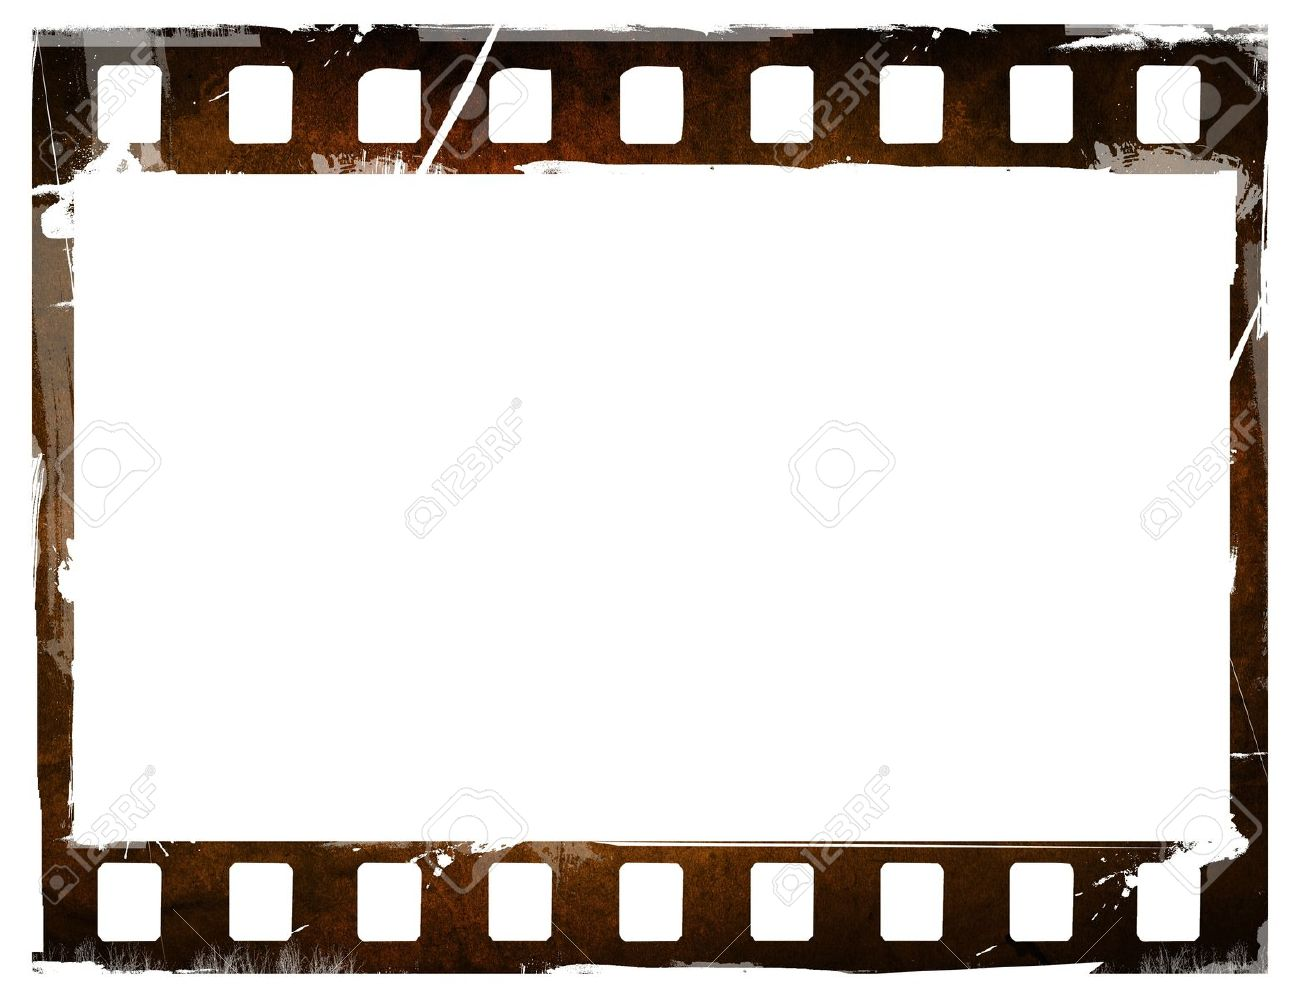 Great Film Strip For Textures And Backgrounds Frame Stock Photo ...